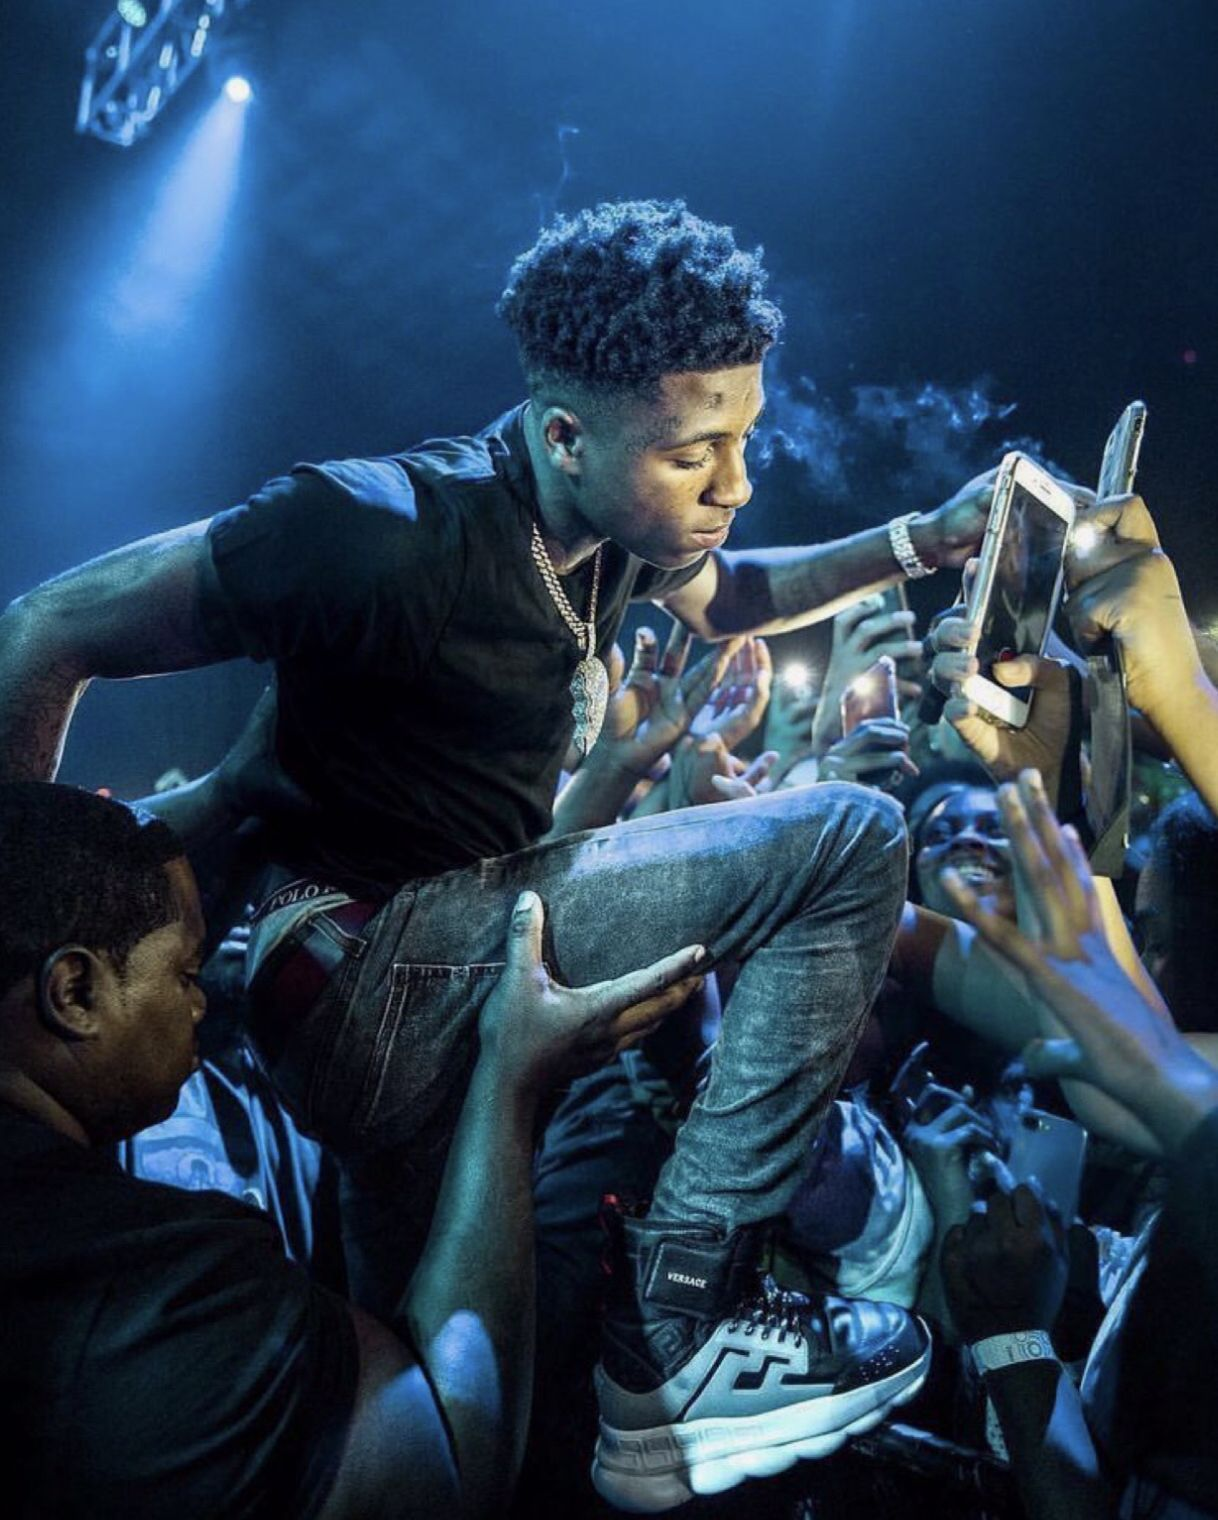 Nba Youngboy Wallpaper Iphone Nba Youngboy Wallpaper Iphone In 2020 Cute Rappers Best Rapper Alive Nba